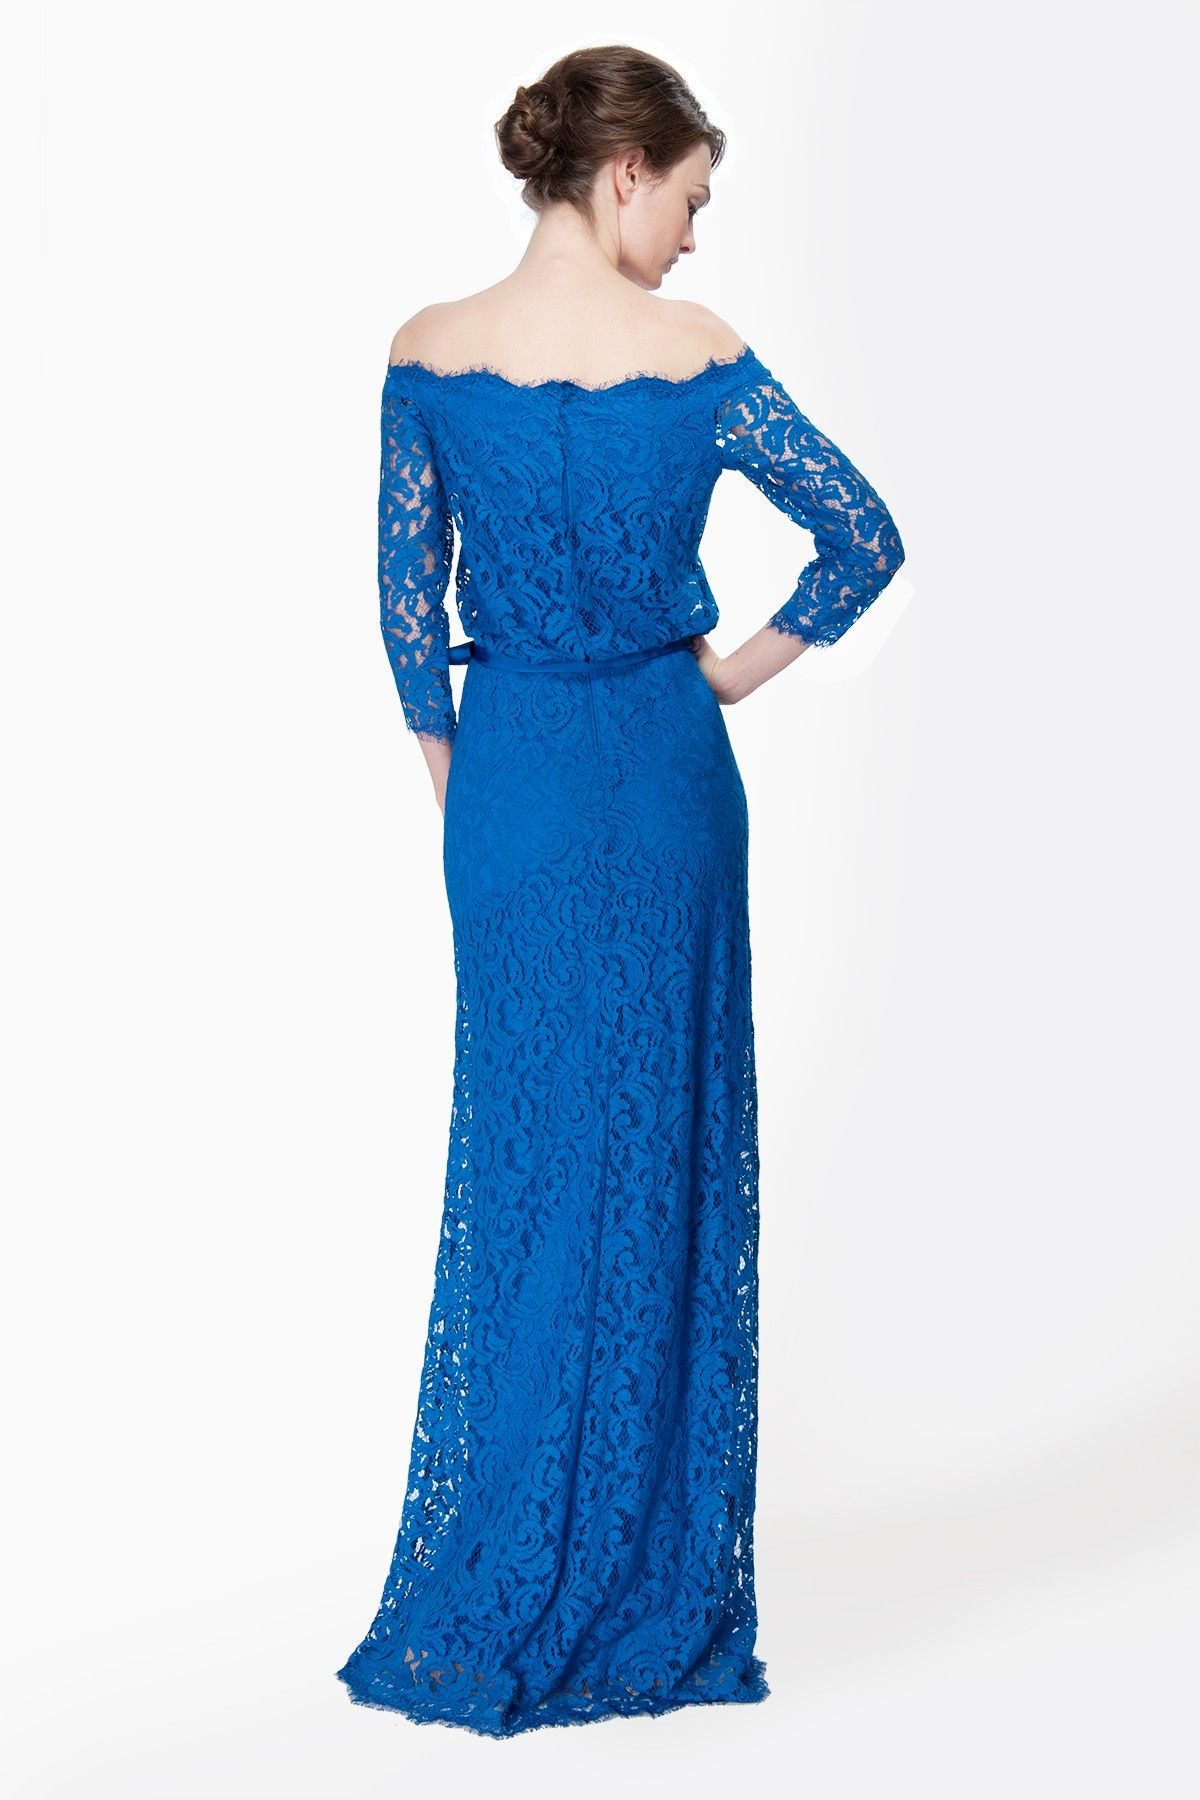 Lace Off Shoulder ¾ Sleeve Gown in China Blue - Evening ... - photo#10